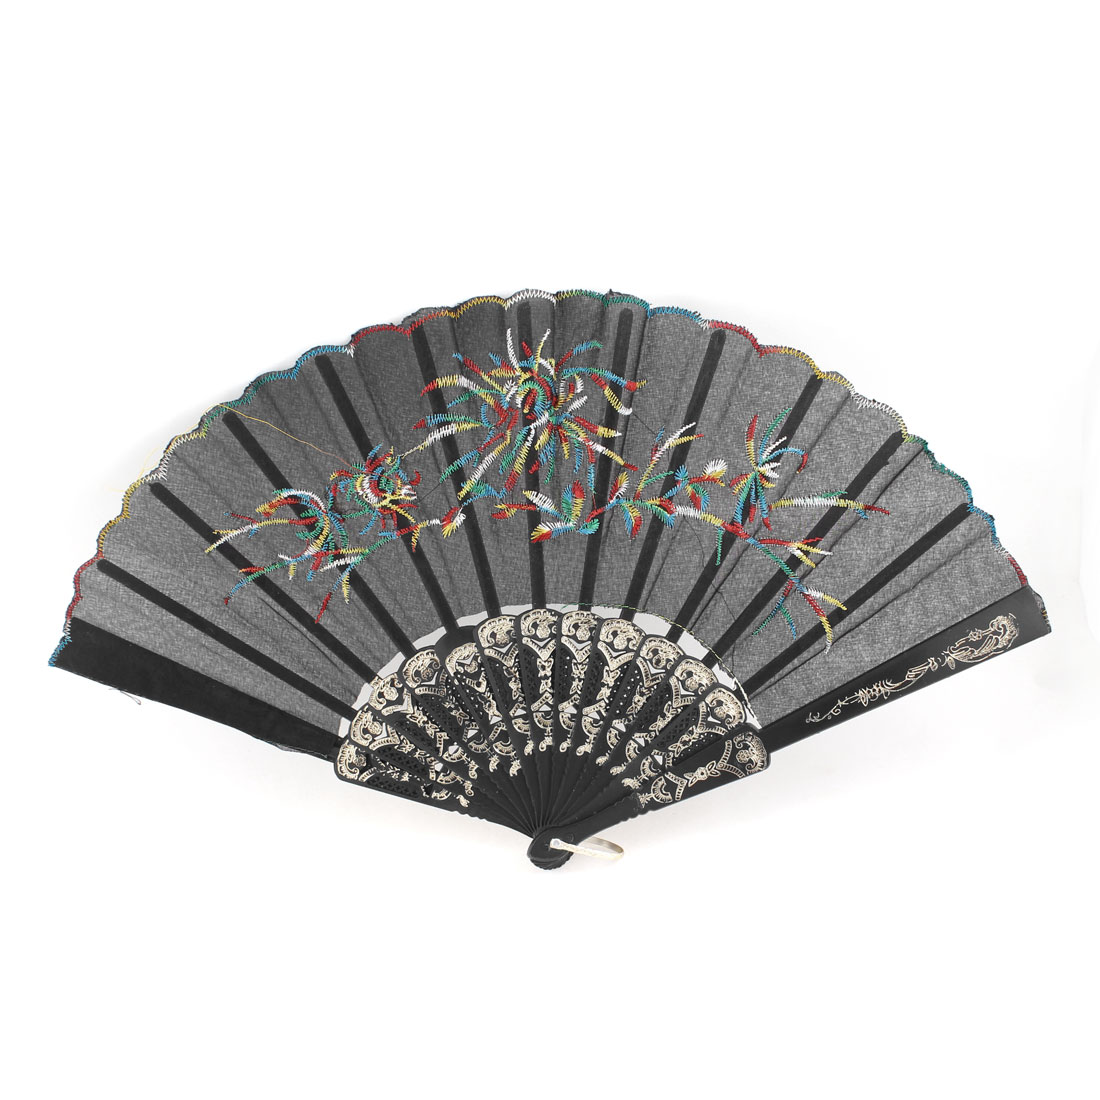 Lily Vine Printed Plastic Ribs Metal Loop Folding Hand Fan Black